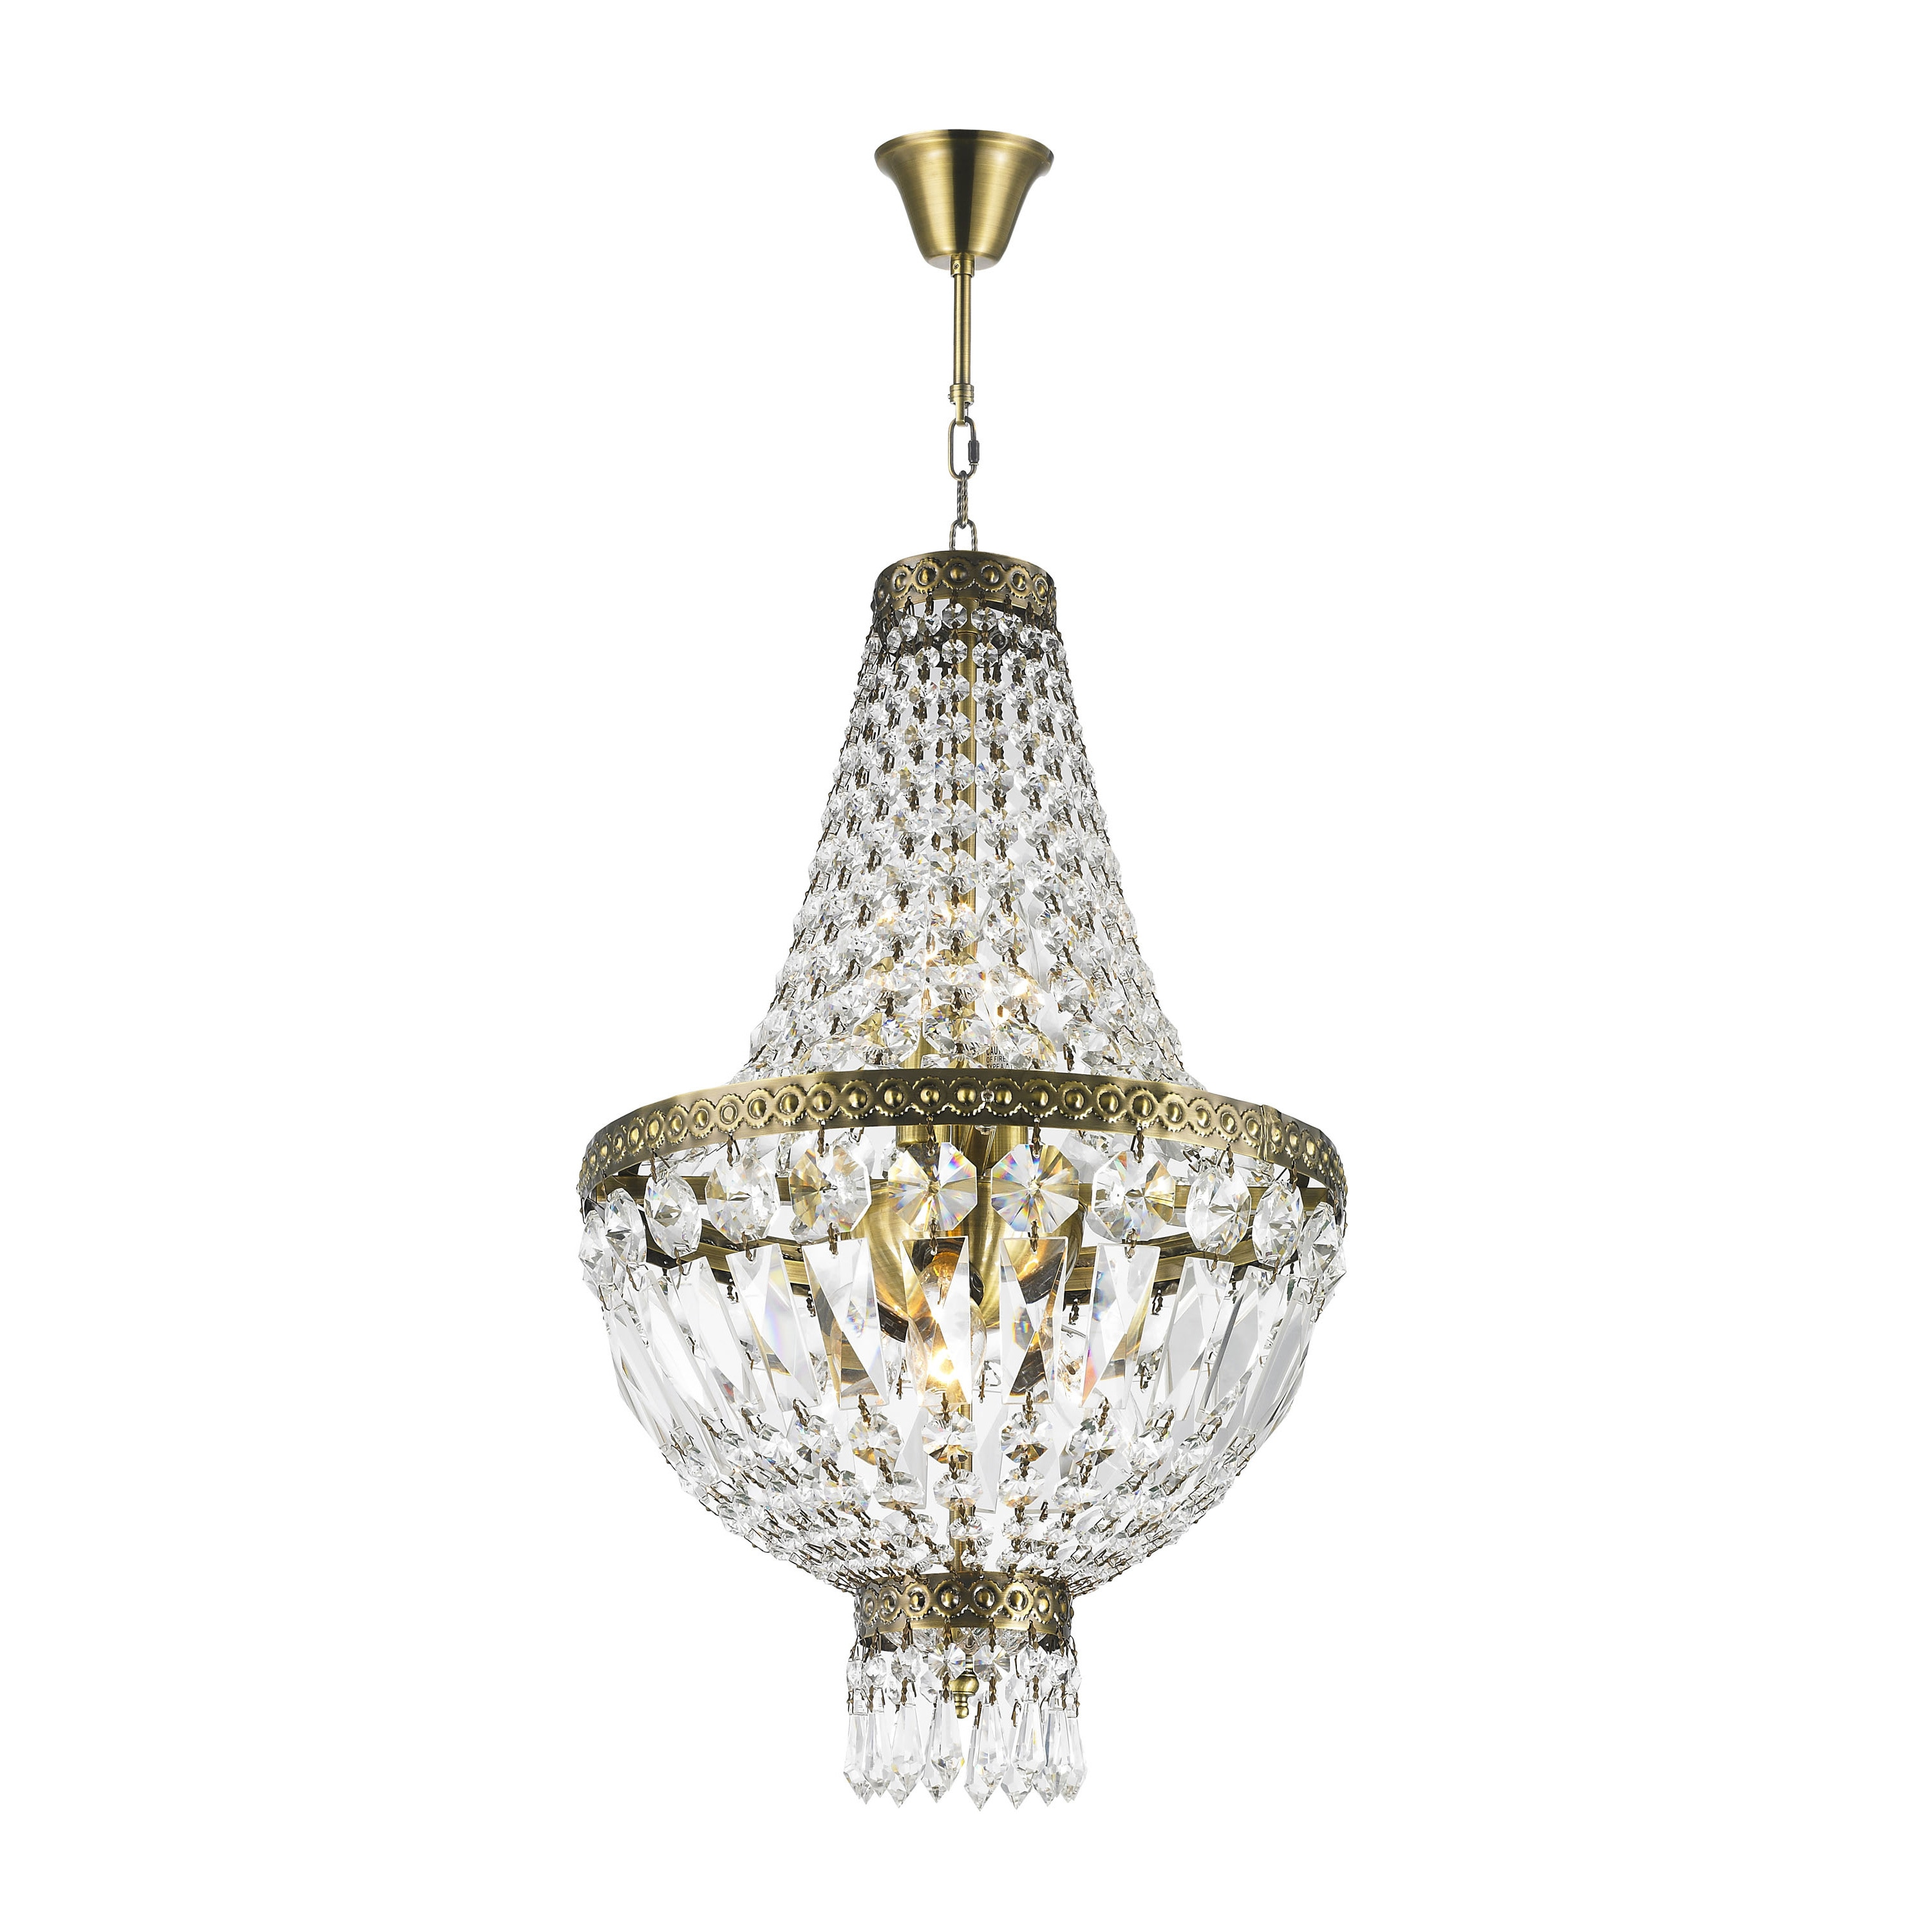 with brie home menards hack century mini of joss modern ideas for depot crystal mid bedrooms bedroom decorating chandelier chandeliers large shorten cheap ikea dining in living under contemporary kristaller pictures room main small